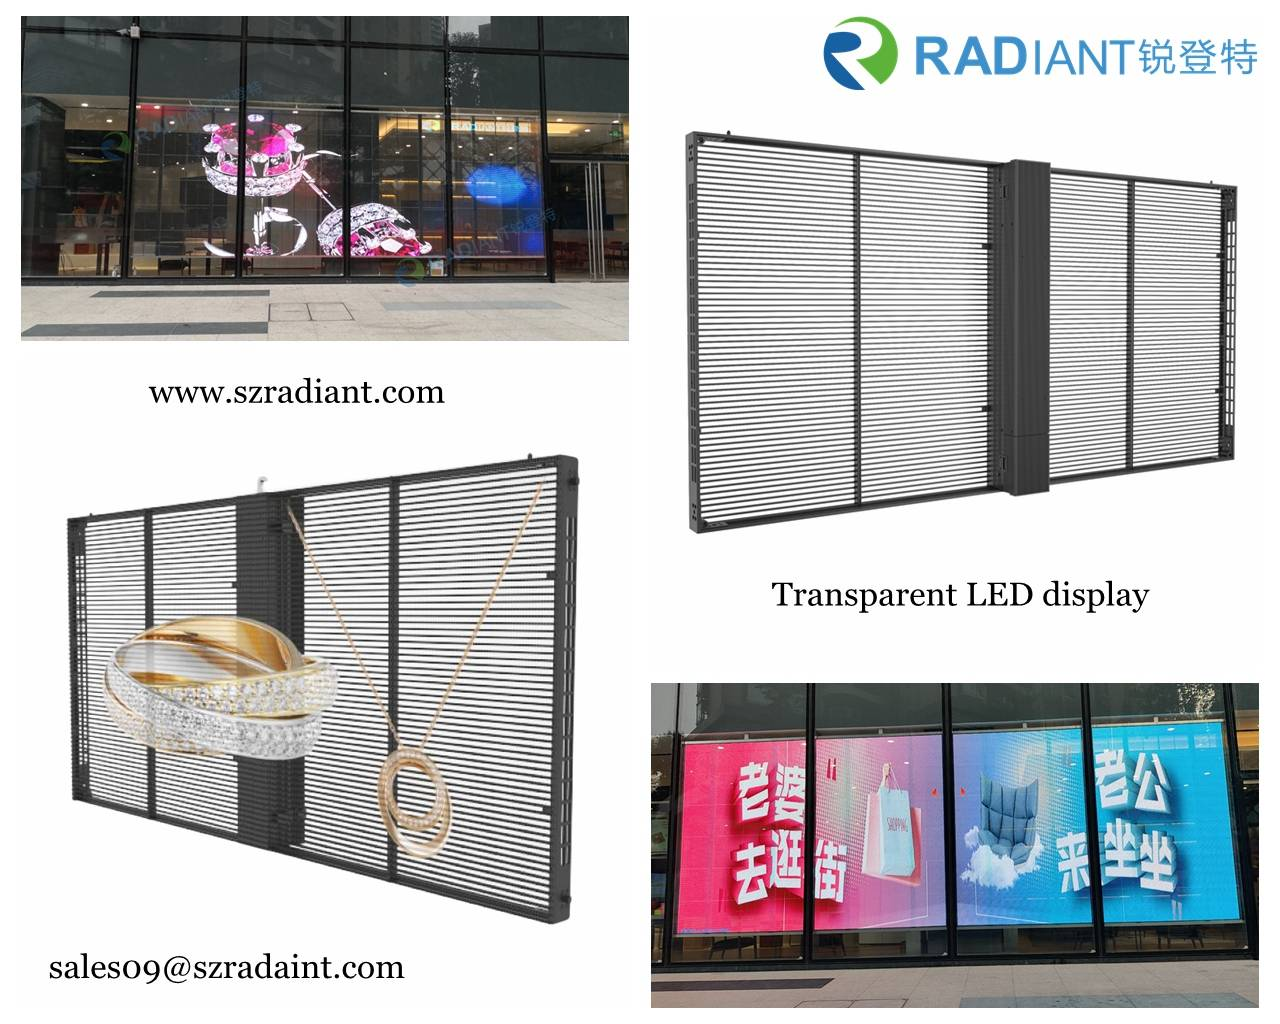 Is the LED transparent screen promising in the market? How is the structure implemented?